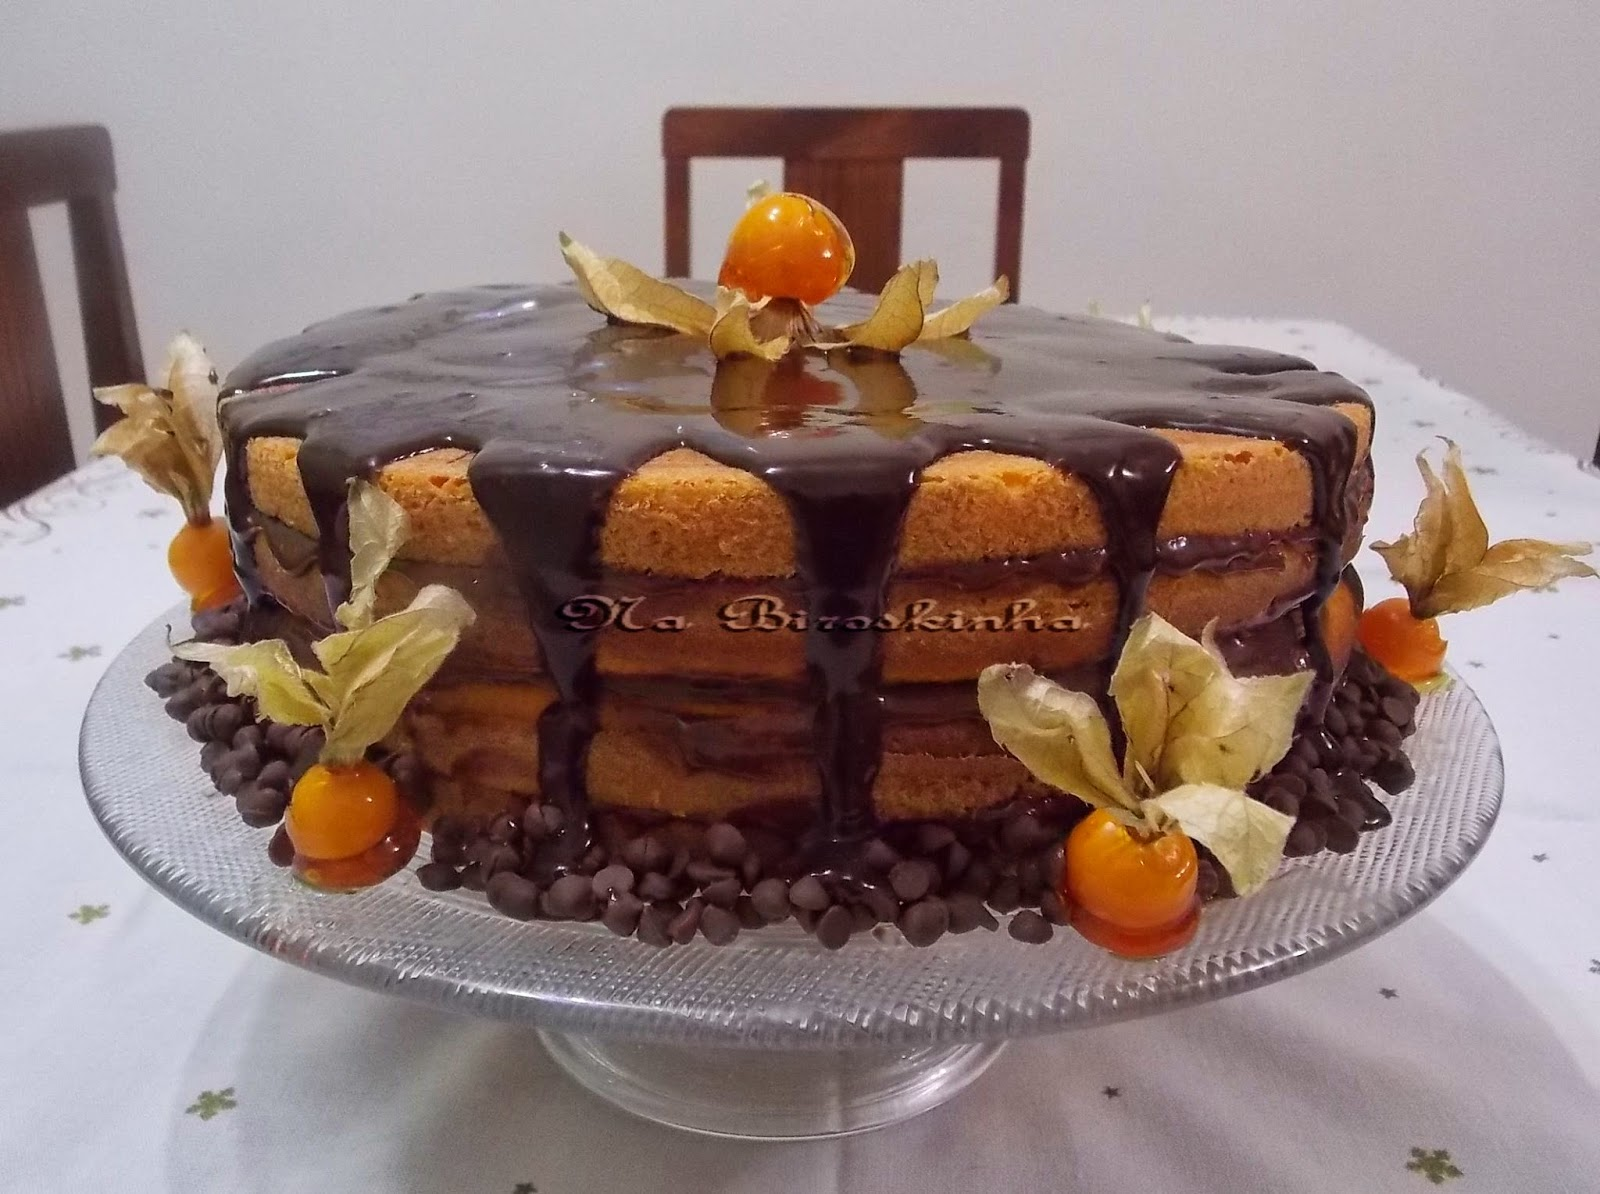 Naked Cake de Cenoura e Chocolate